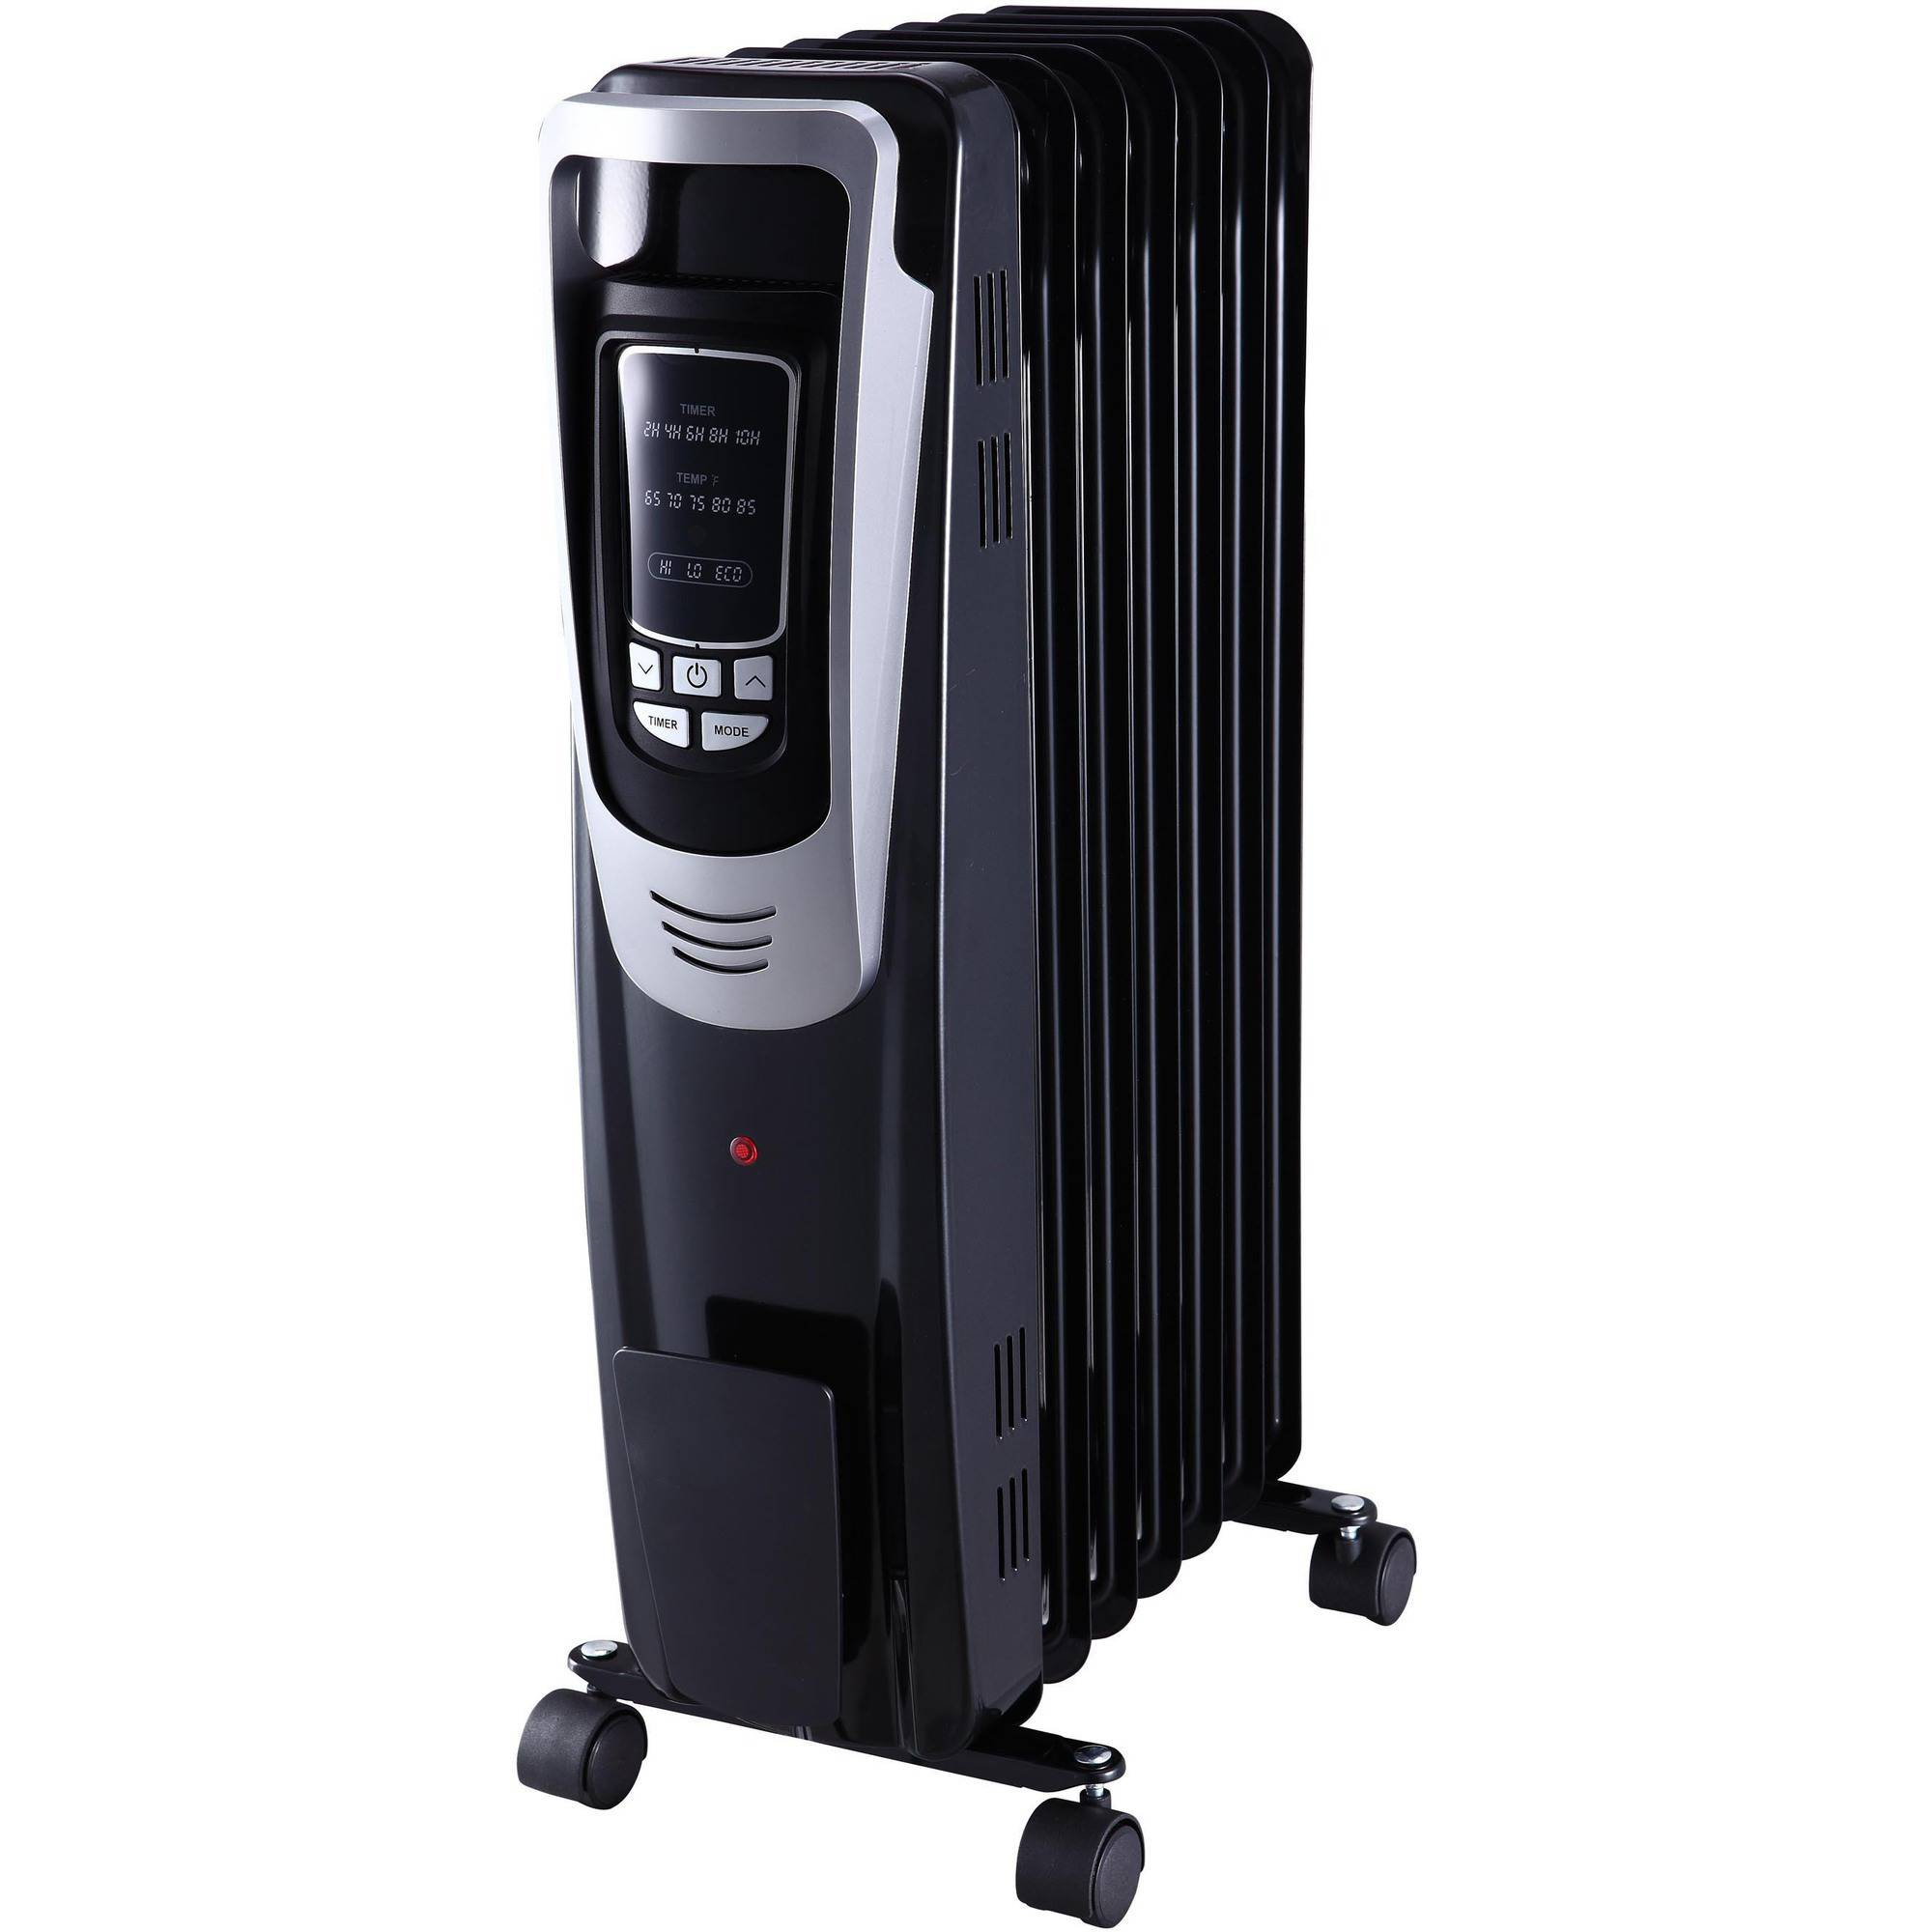 Pelonis Digital Oil Filled Heater, Black